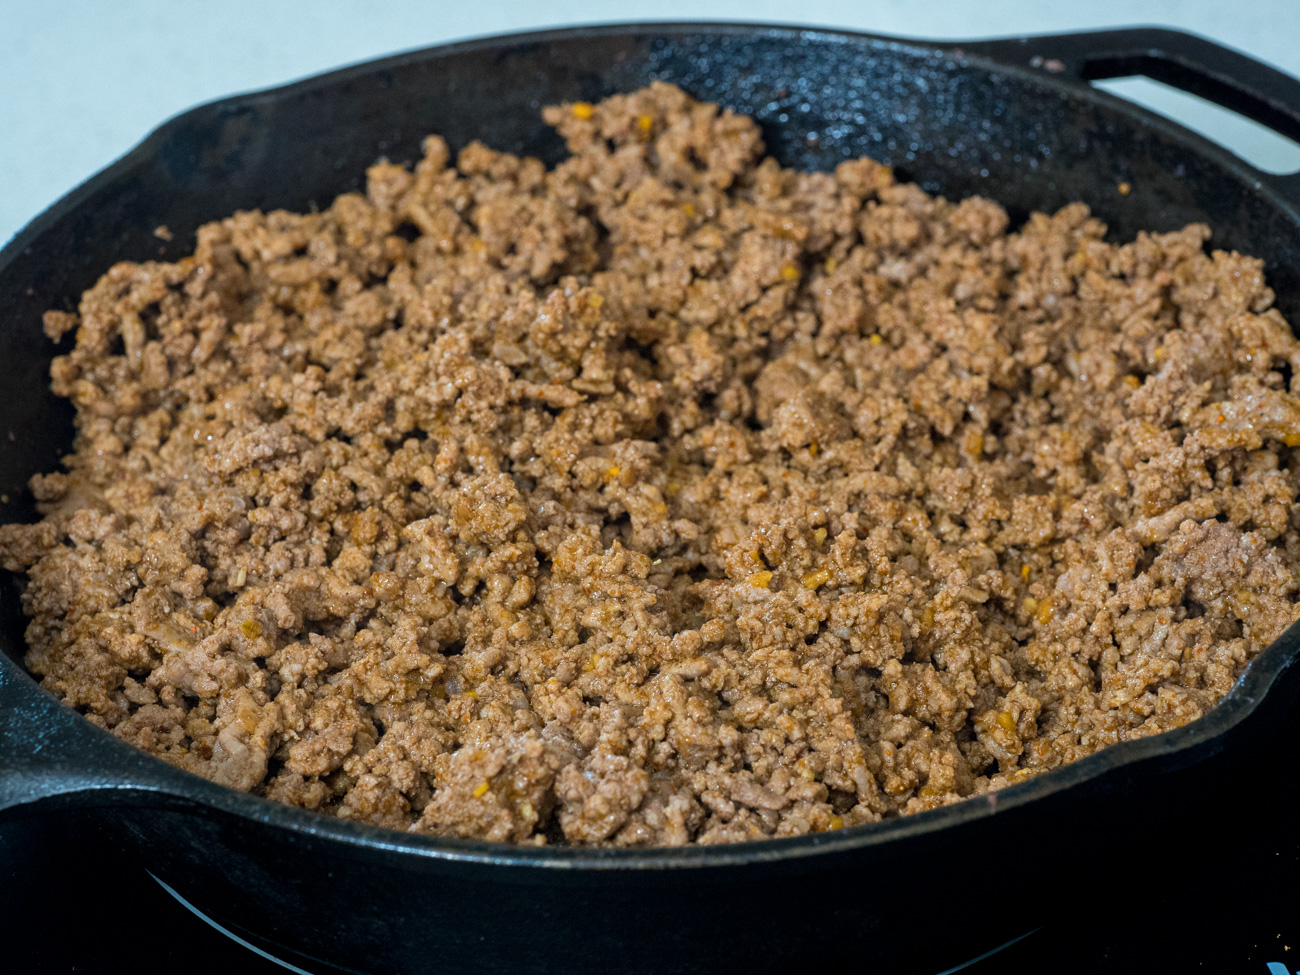 In a large skillet combine beef and taco seasoning and cook until browned. Remove beef from pan and set aside.